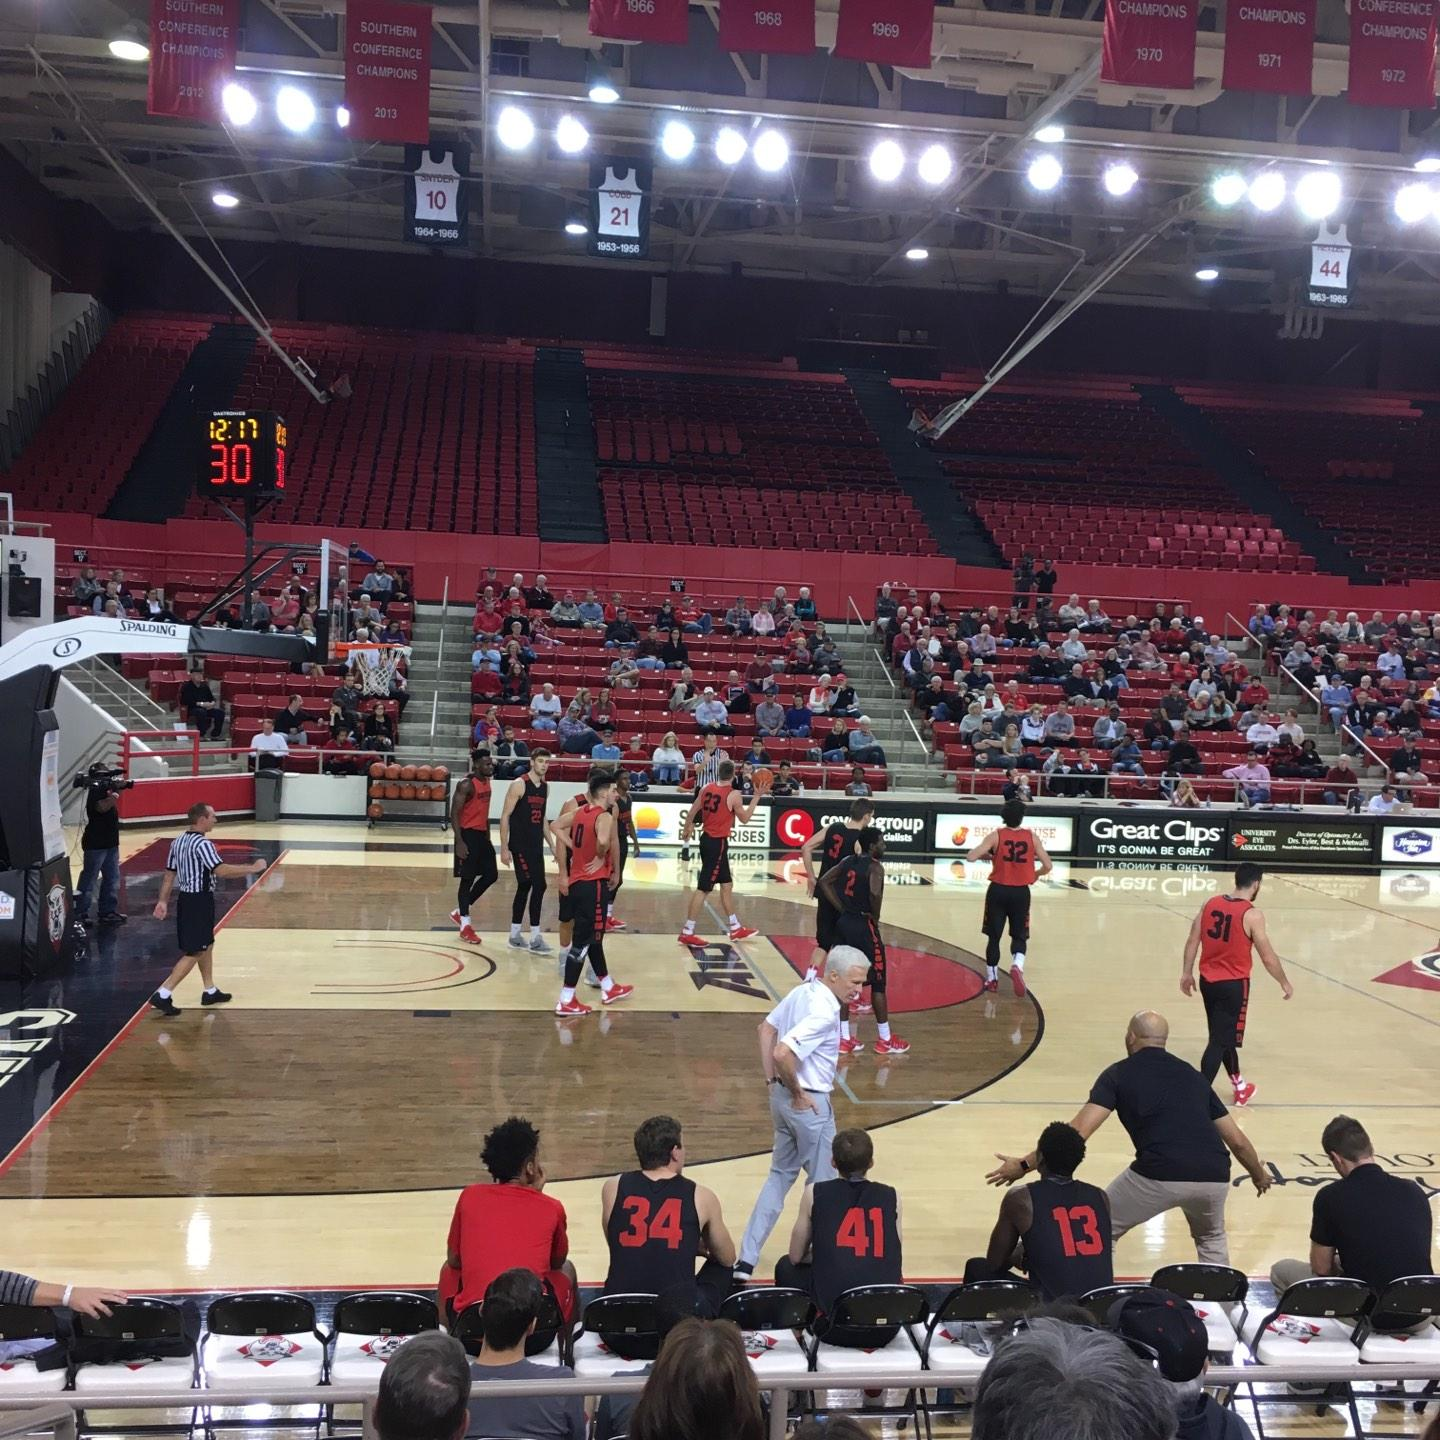 John M. Belk Arena Section 12 Row E Seat 1